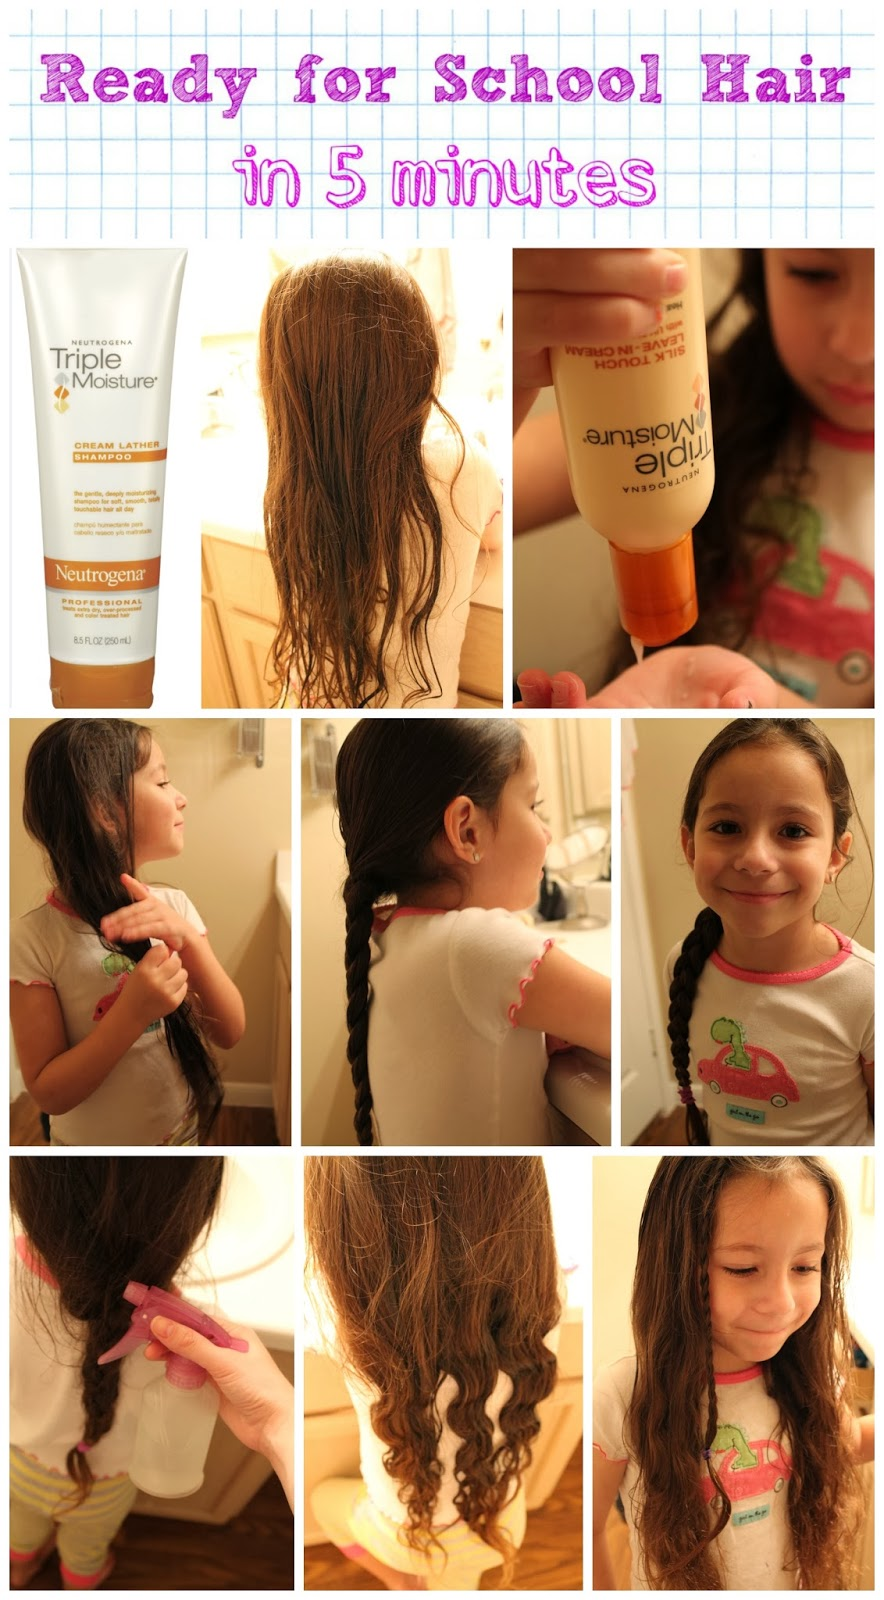 I Use The Shampoo Conditioner And Leave In Cream Daily Triple Moisture Deep Recovery Hair Mask Every Few Days